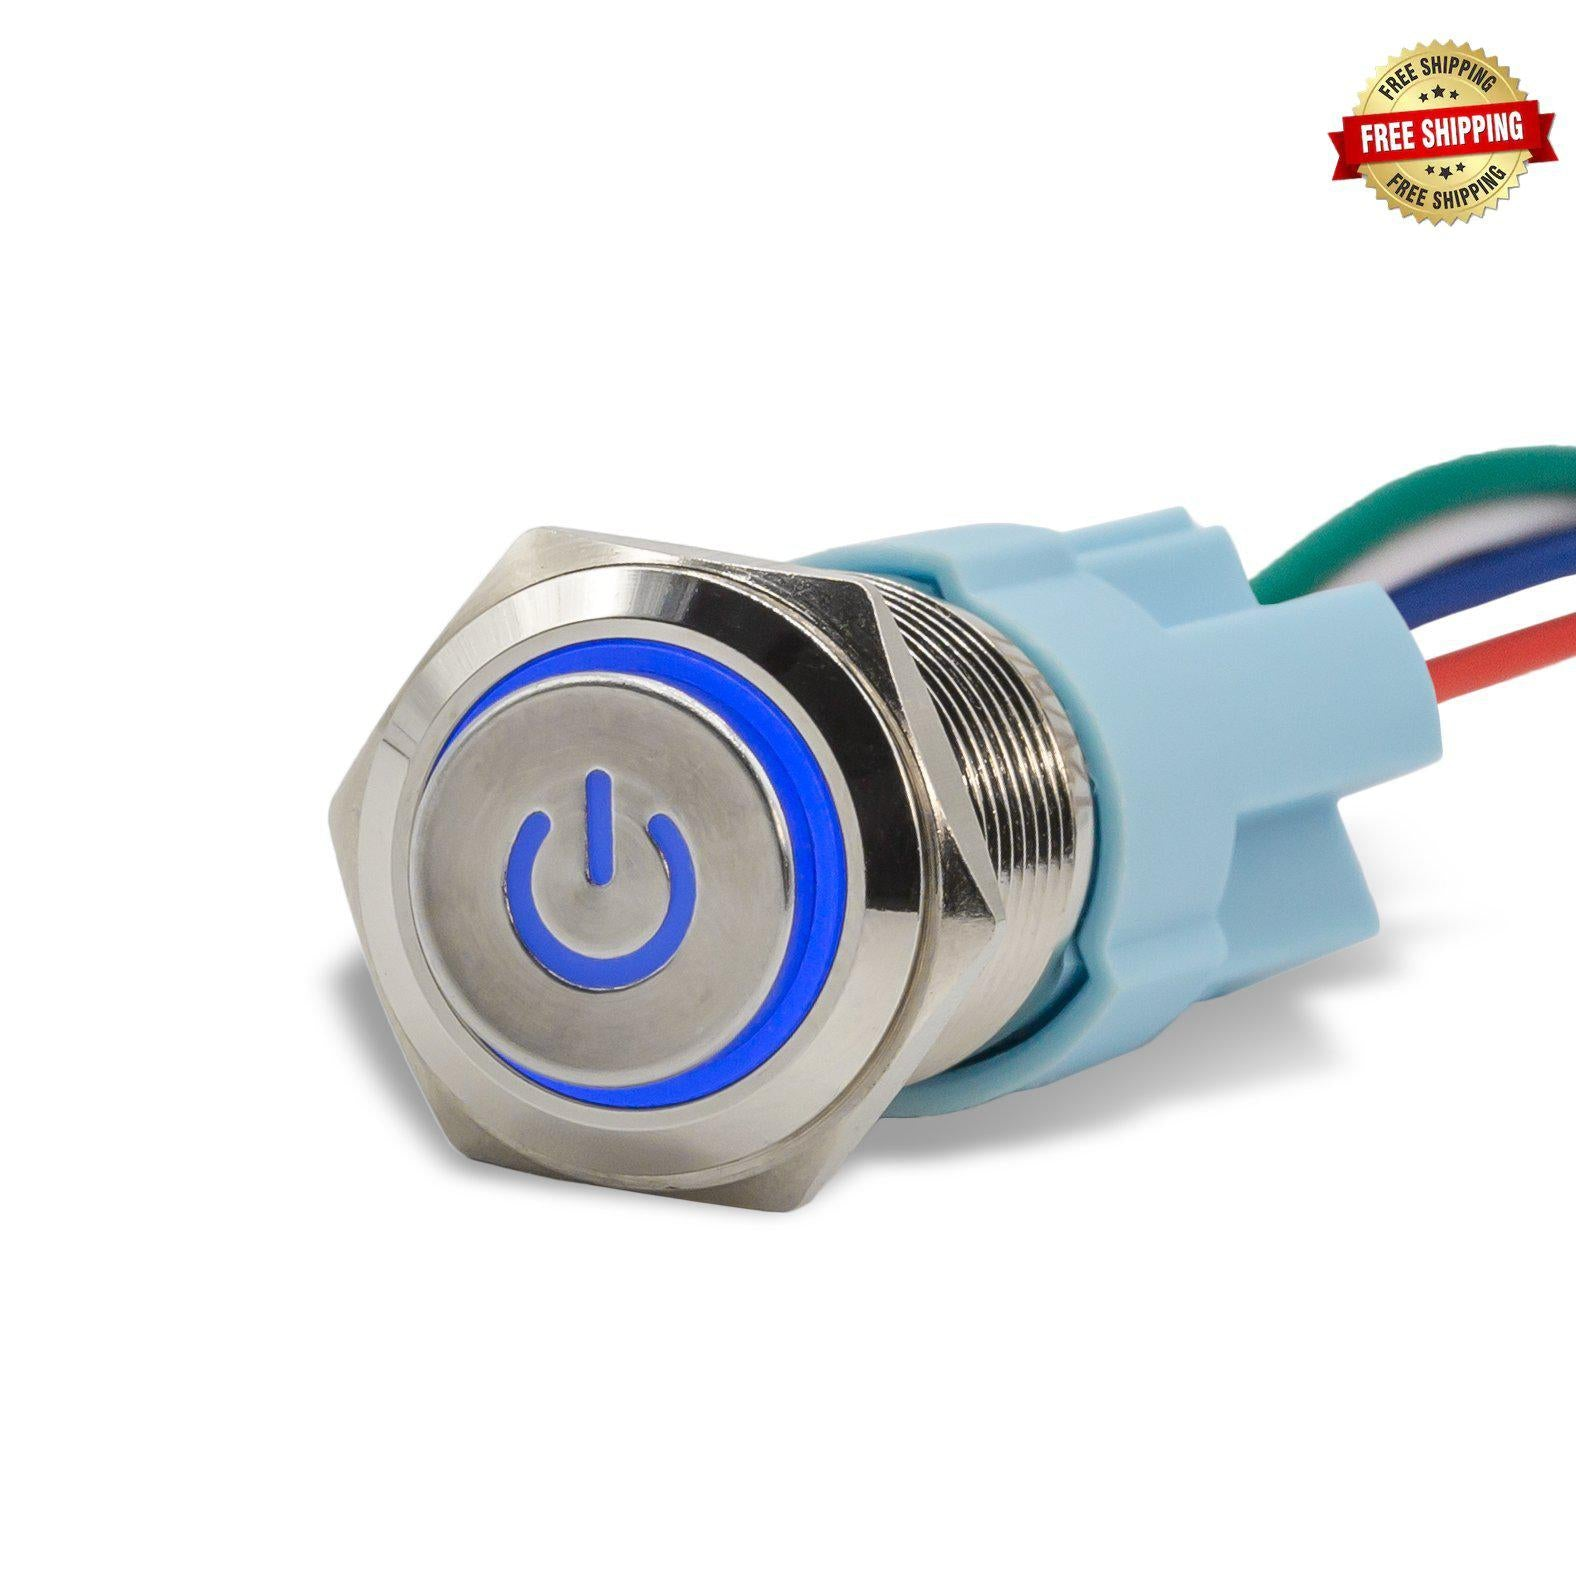 Sparked Innovations Illuminated Switches for Relay Box -